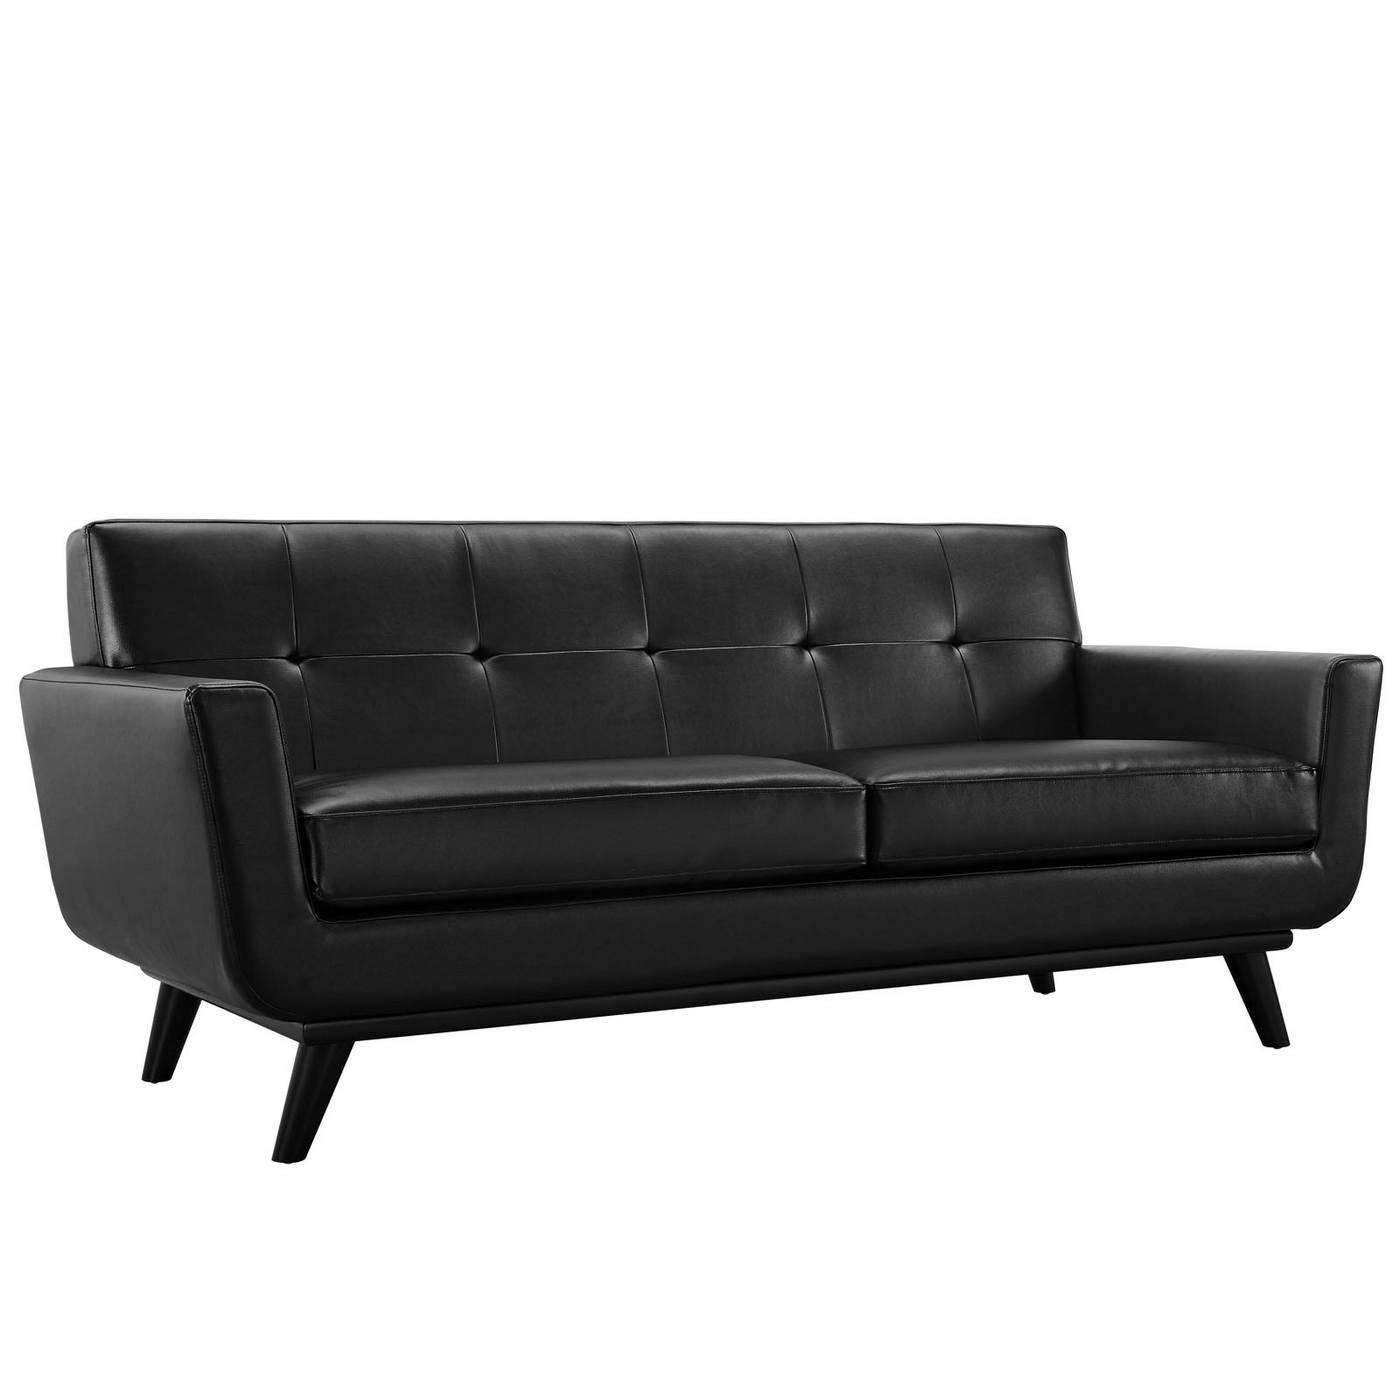 Engage Modern Bonded Leather Loveseat With Button Tufted